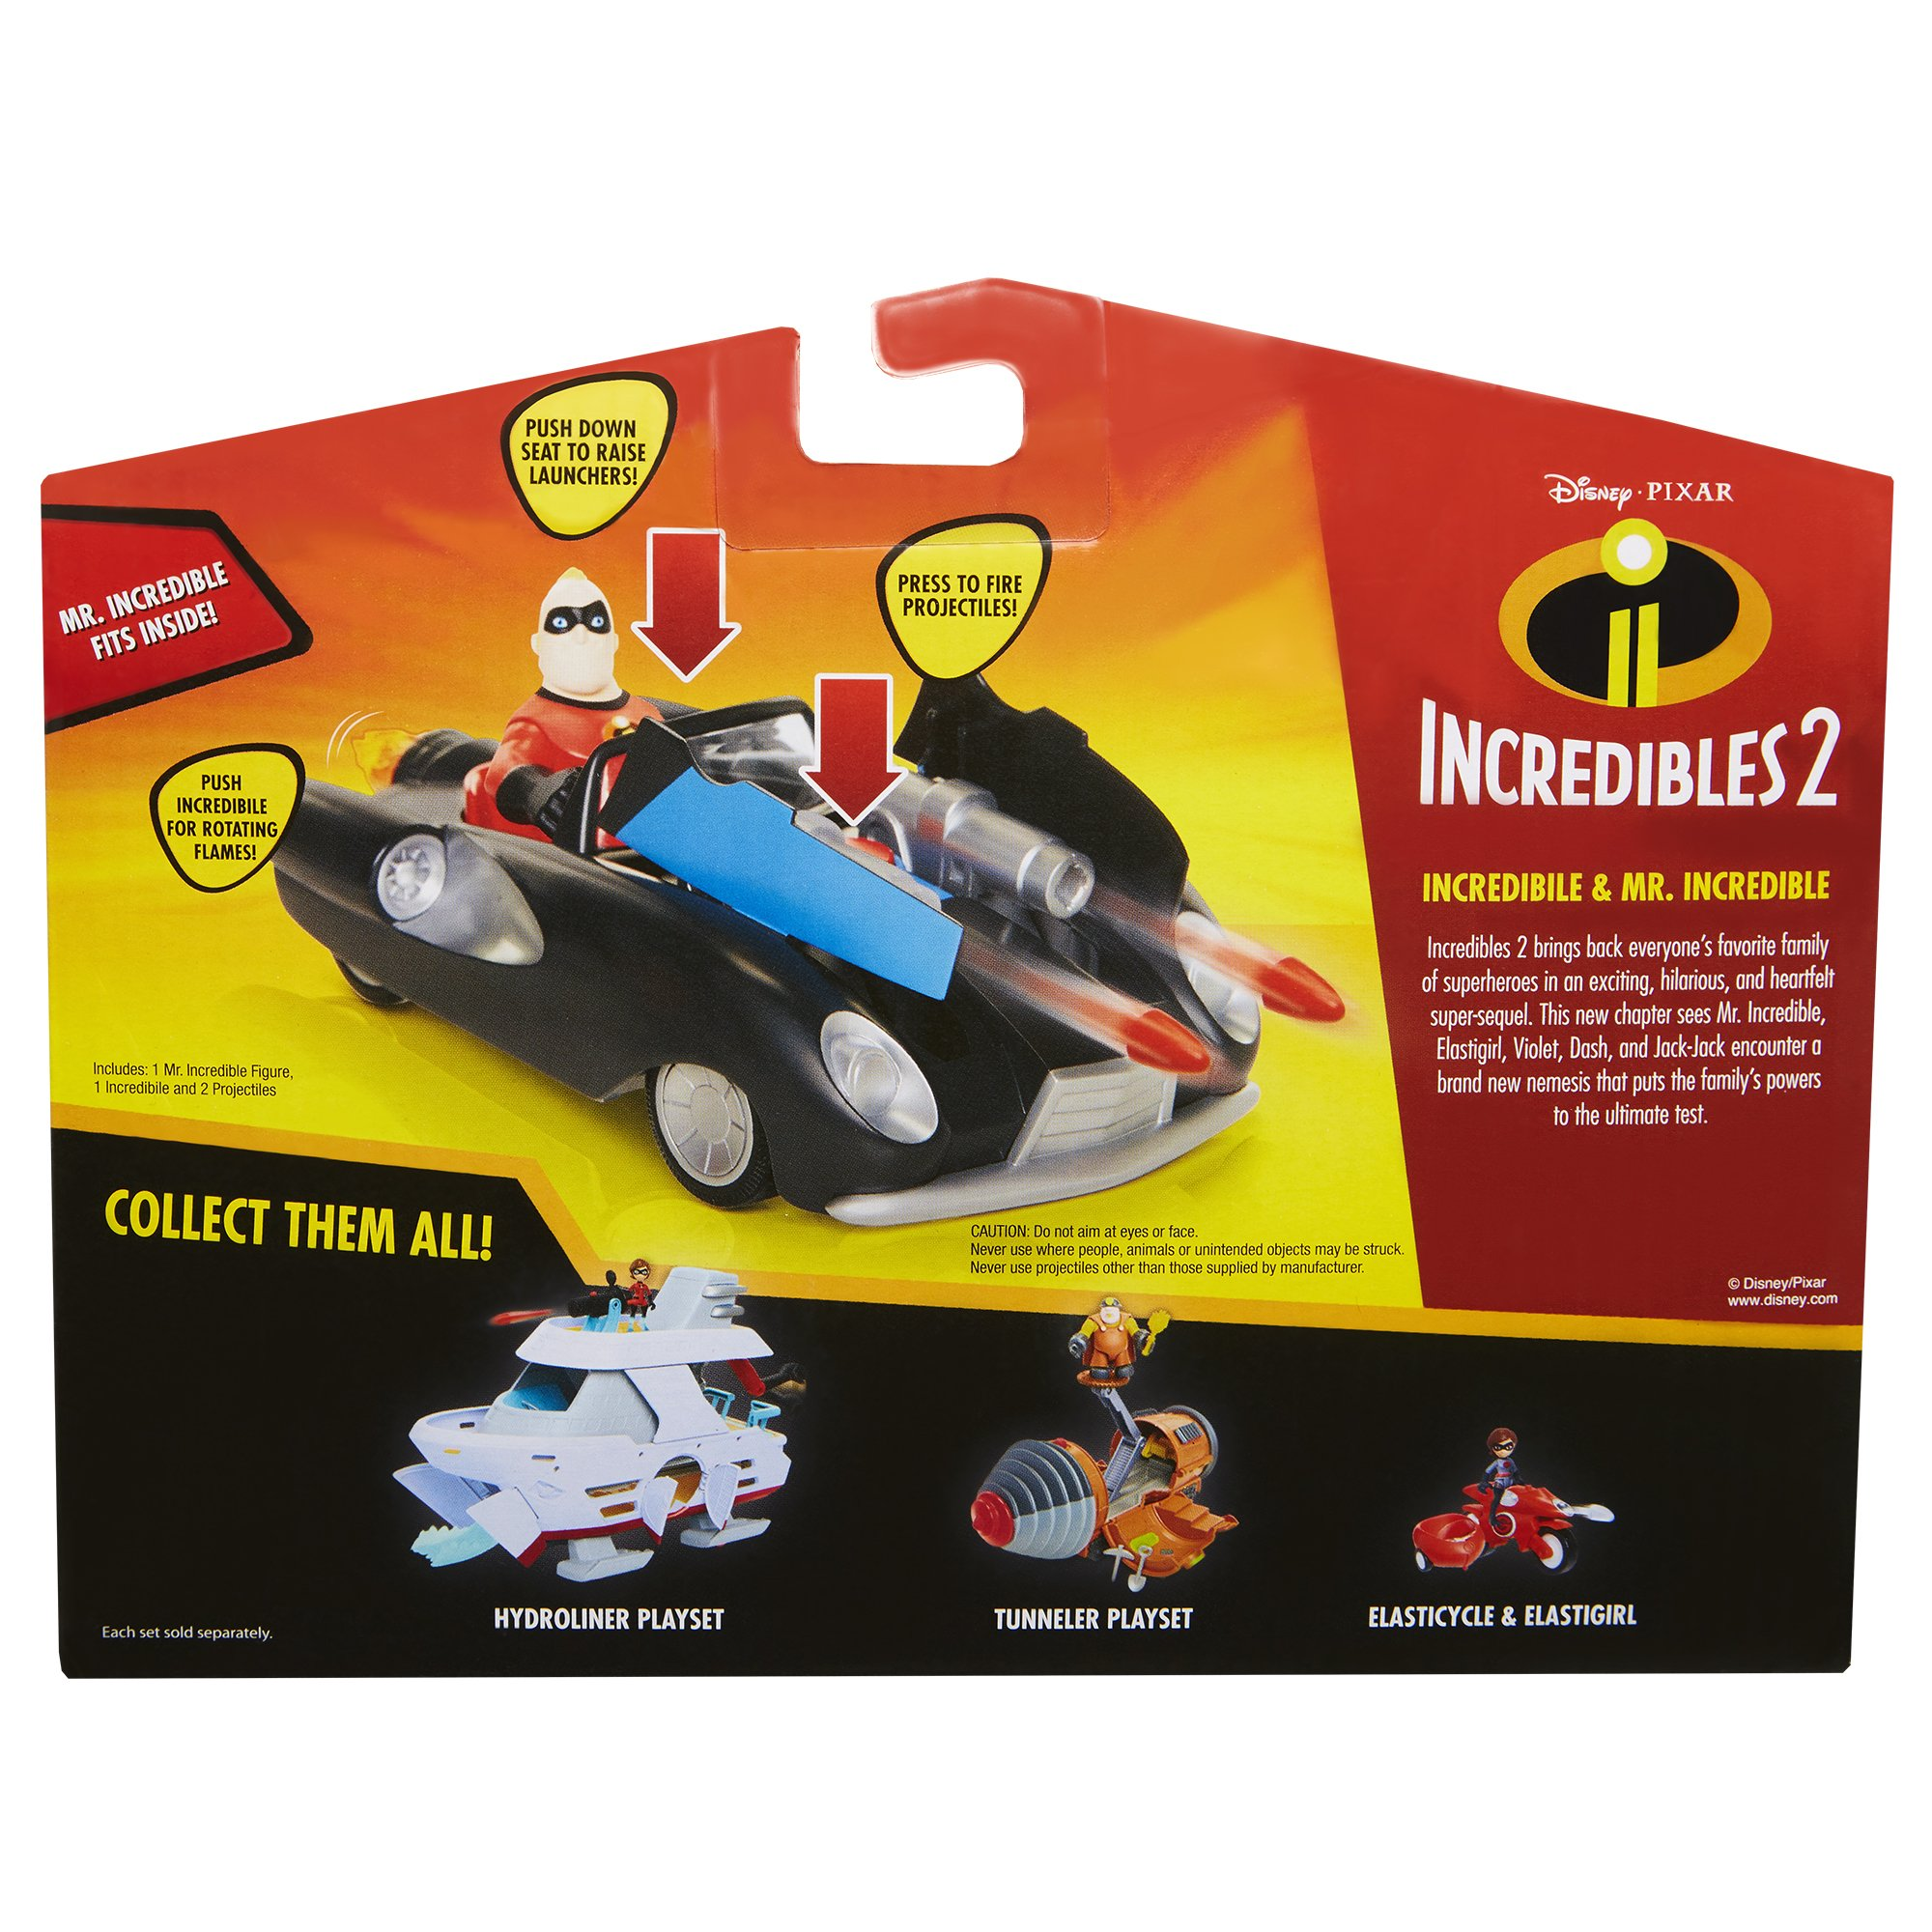 The Incredibles 2 Incredibile Car & Mr. Incredible Action Figure 2-Piece Set, Black Car and Red Mr. Incredible Figure, Medium by The Incredibles 2 (Image #7)